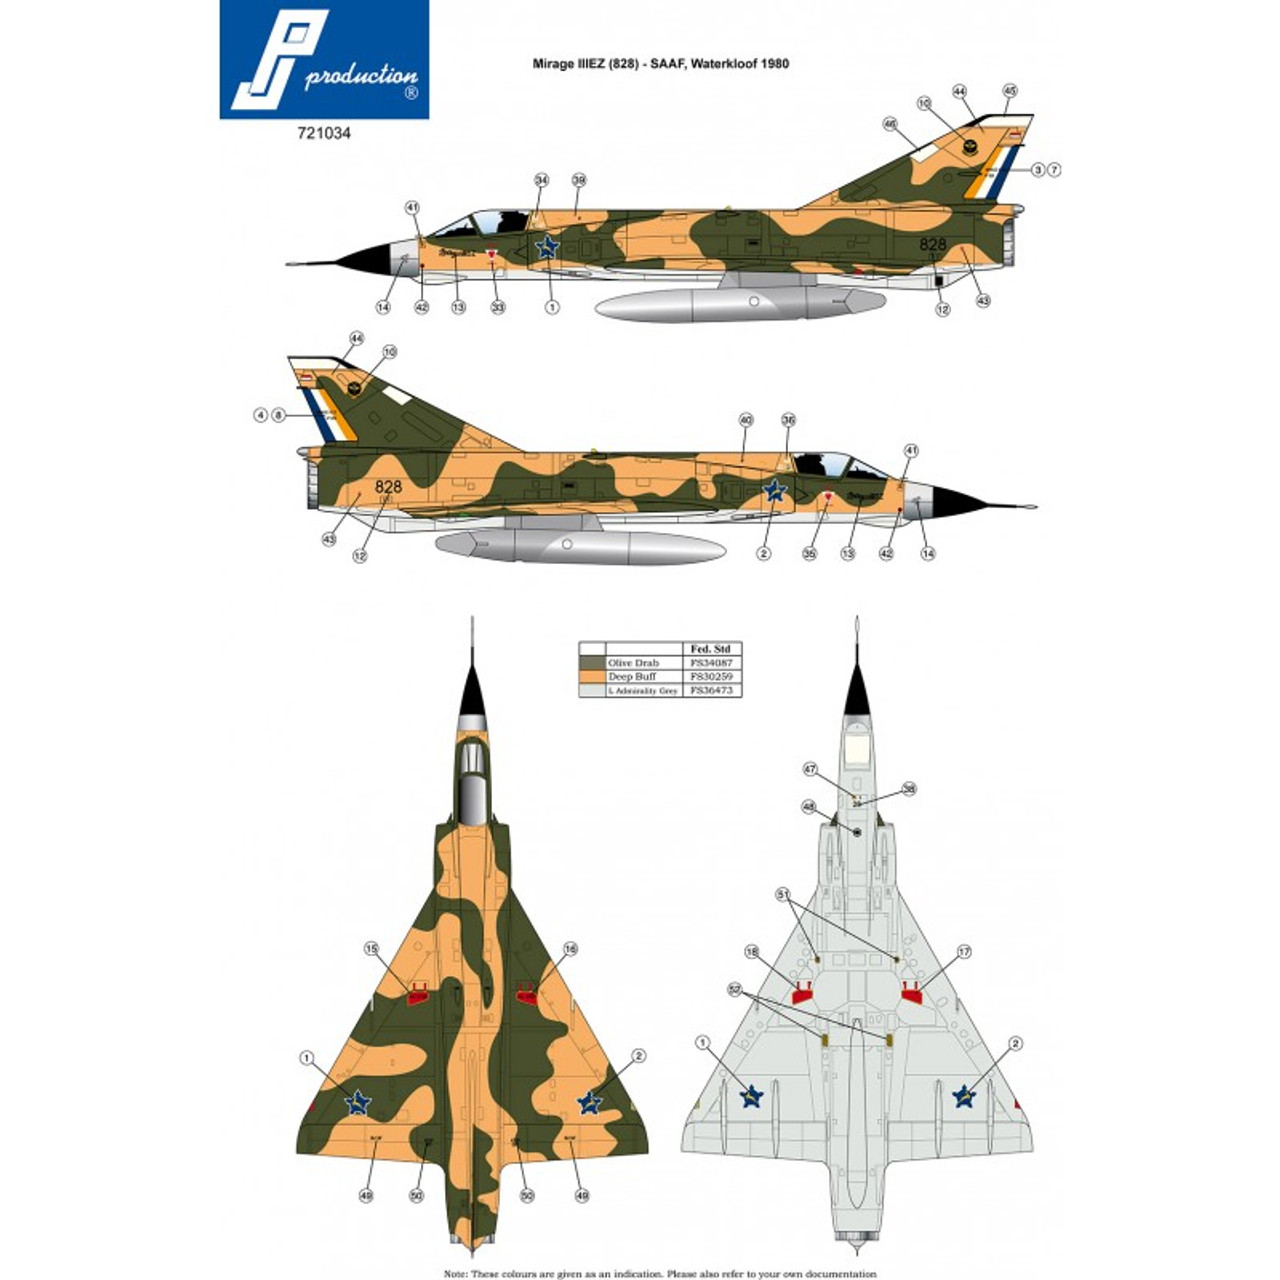 PJ Productions Dassault Mirage IIIEZ Kit 1:72 (PJP721034)